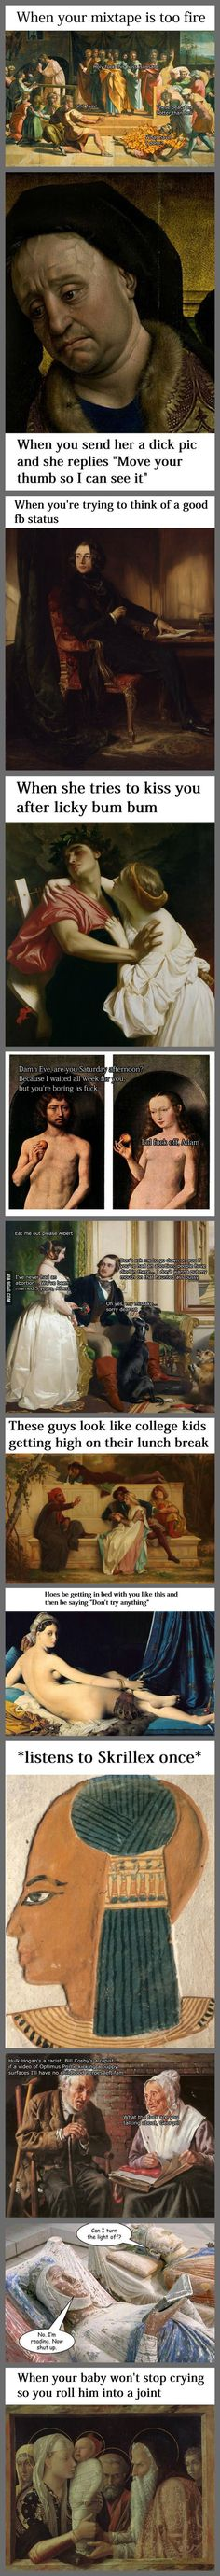 Classical Art Memes Latest (Part-20)